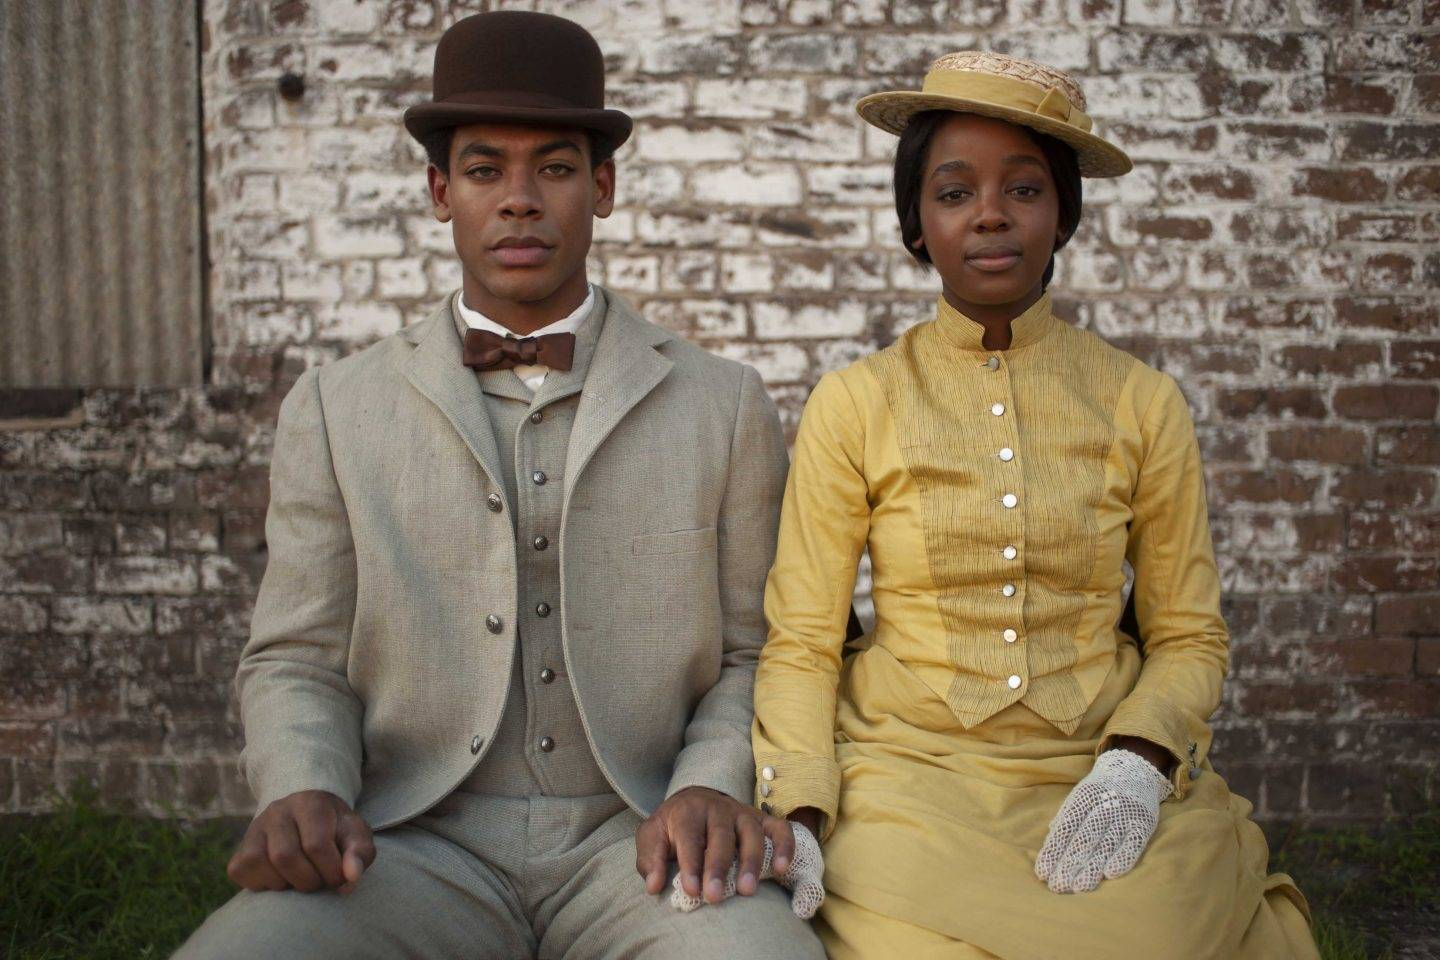 Aaron Pierre as Caesar and Thuso Mbedu as Cora in a still from Barry Jenkins' adaptation of The Underground Railroad Photo: Kyle Kaplan/ Amazon Studios